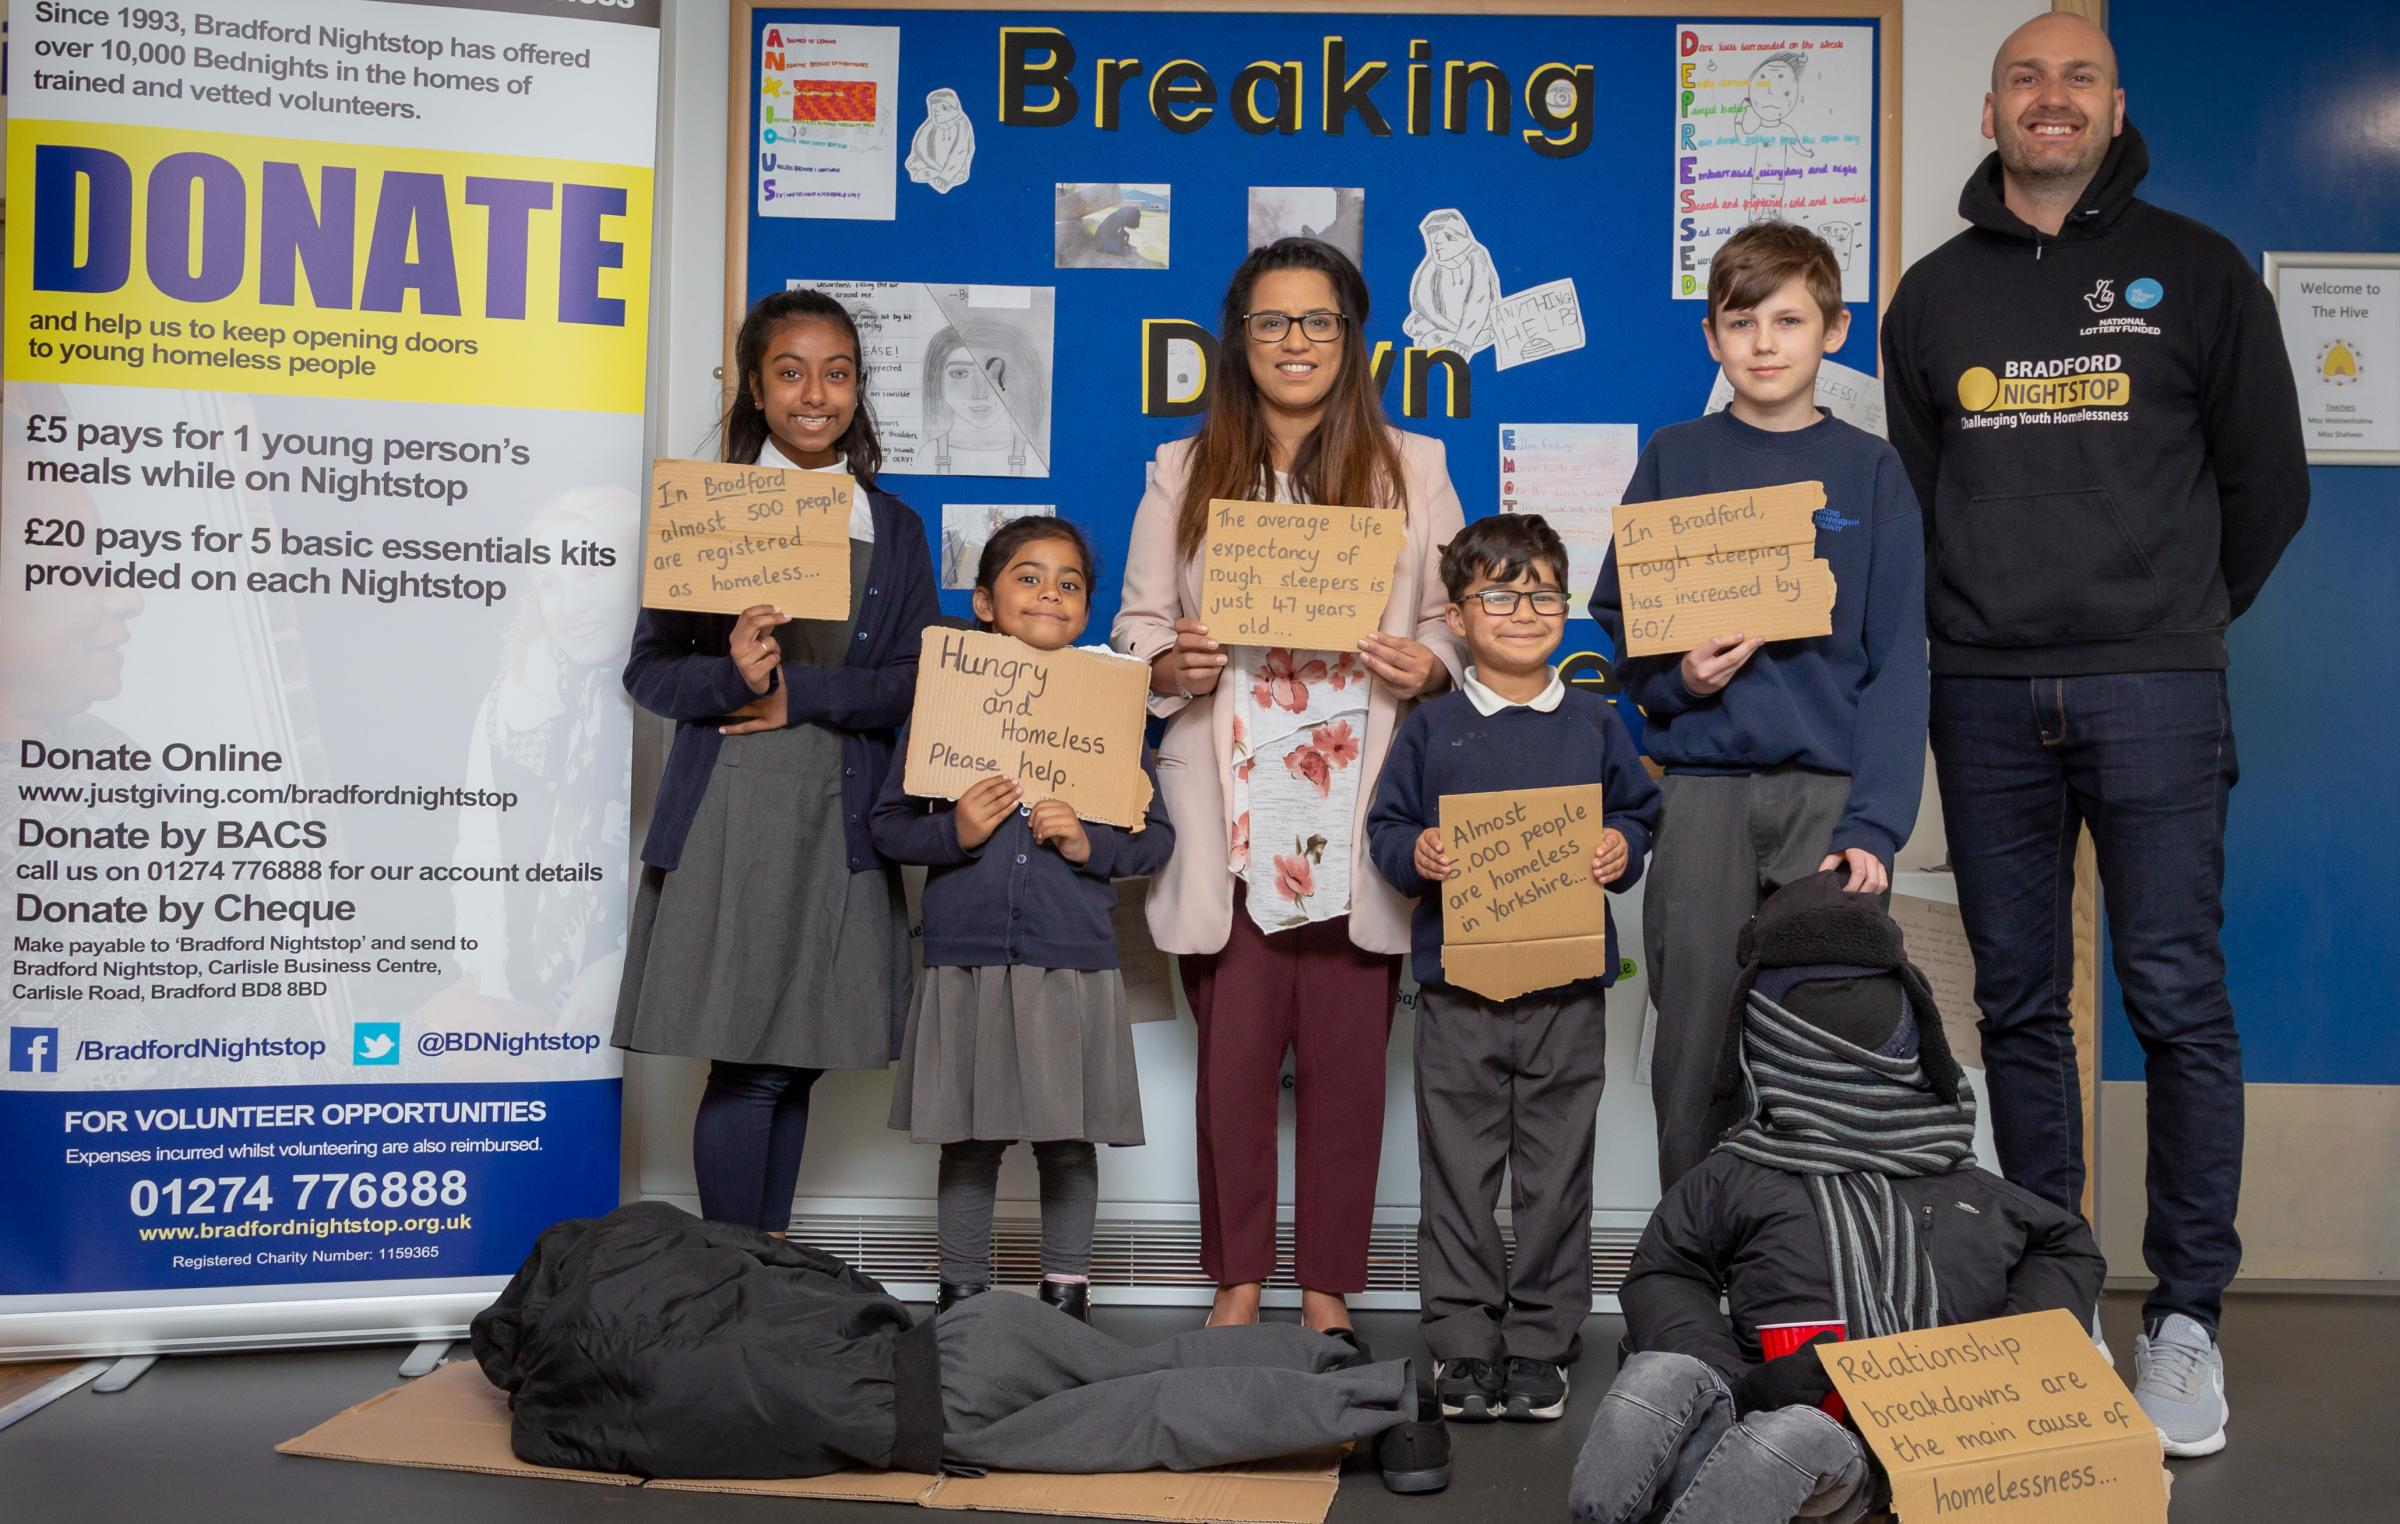 Dixons Manningham Primary working with Bradford Nightstop on homelessness